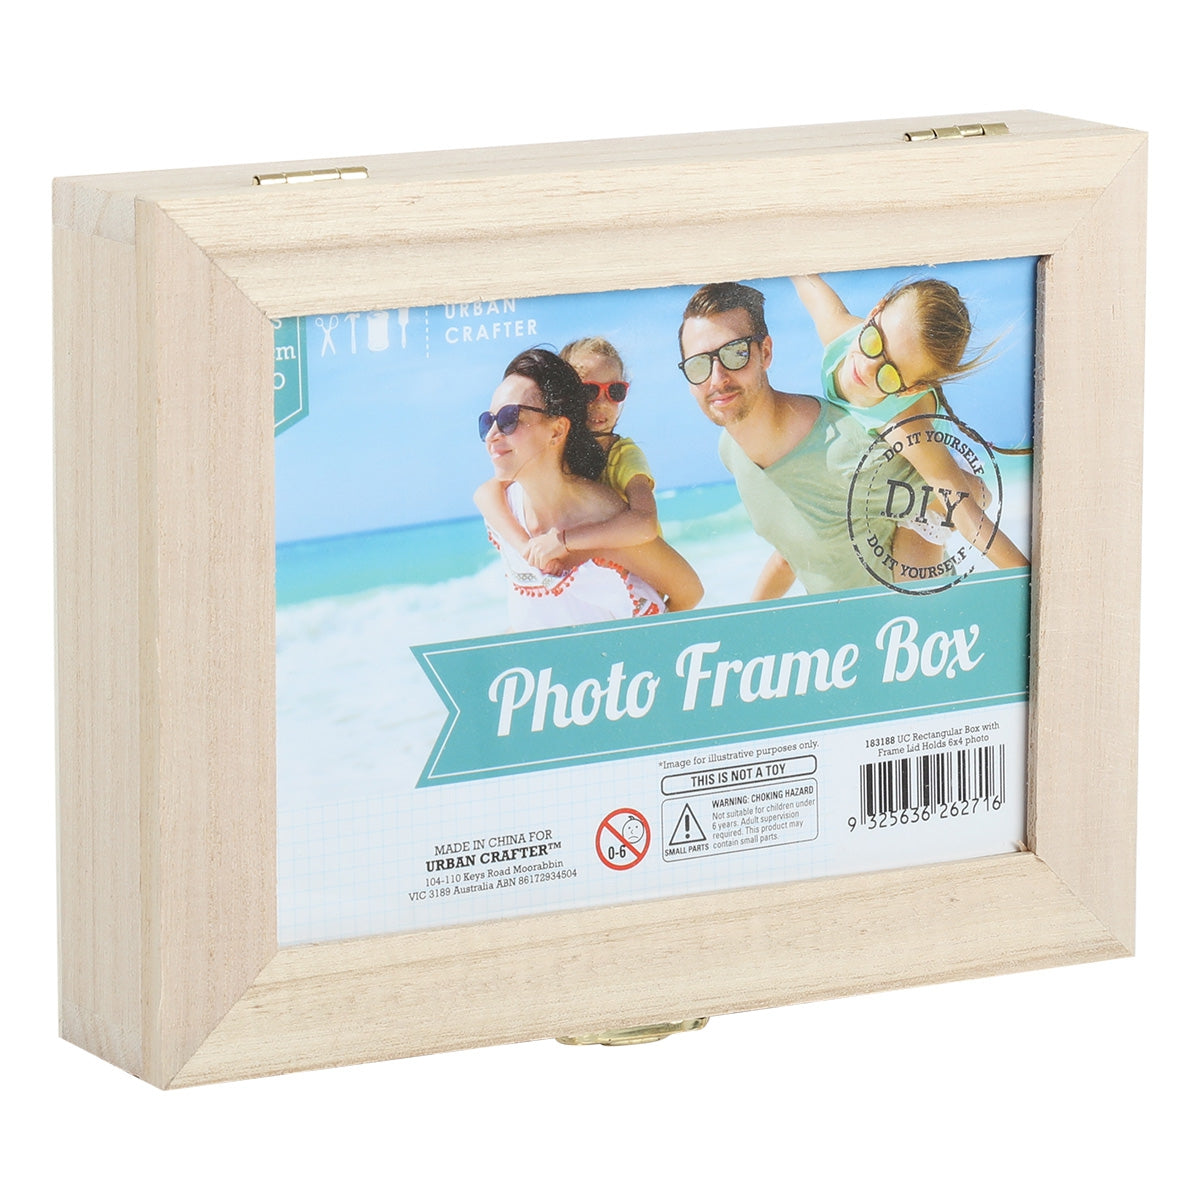 Image of Urban Crafter Rectangular Photo Frame Box Lid Holds 6 x 4 Photo